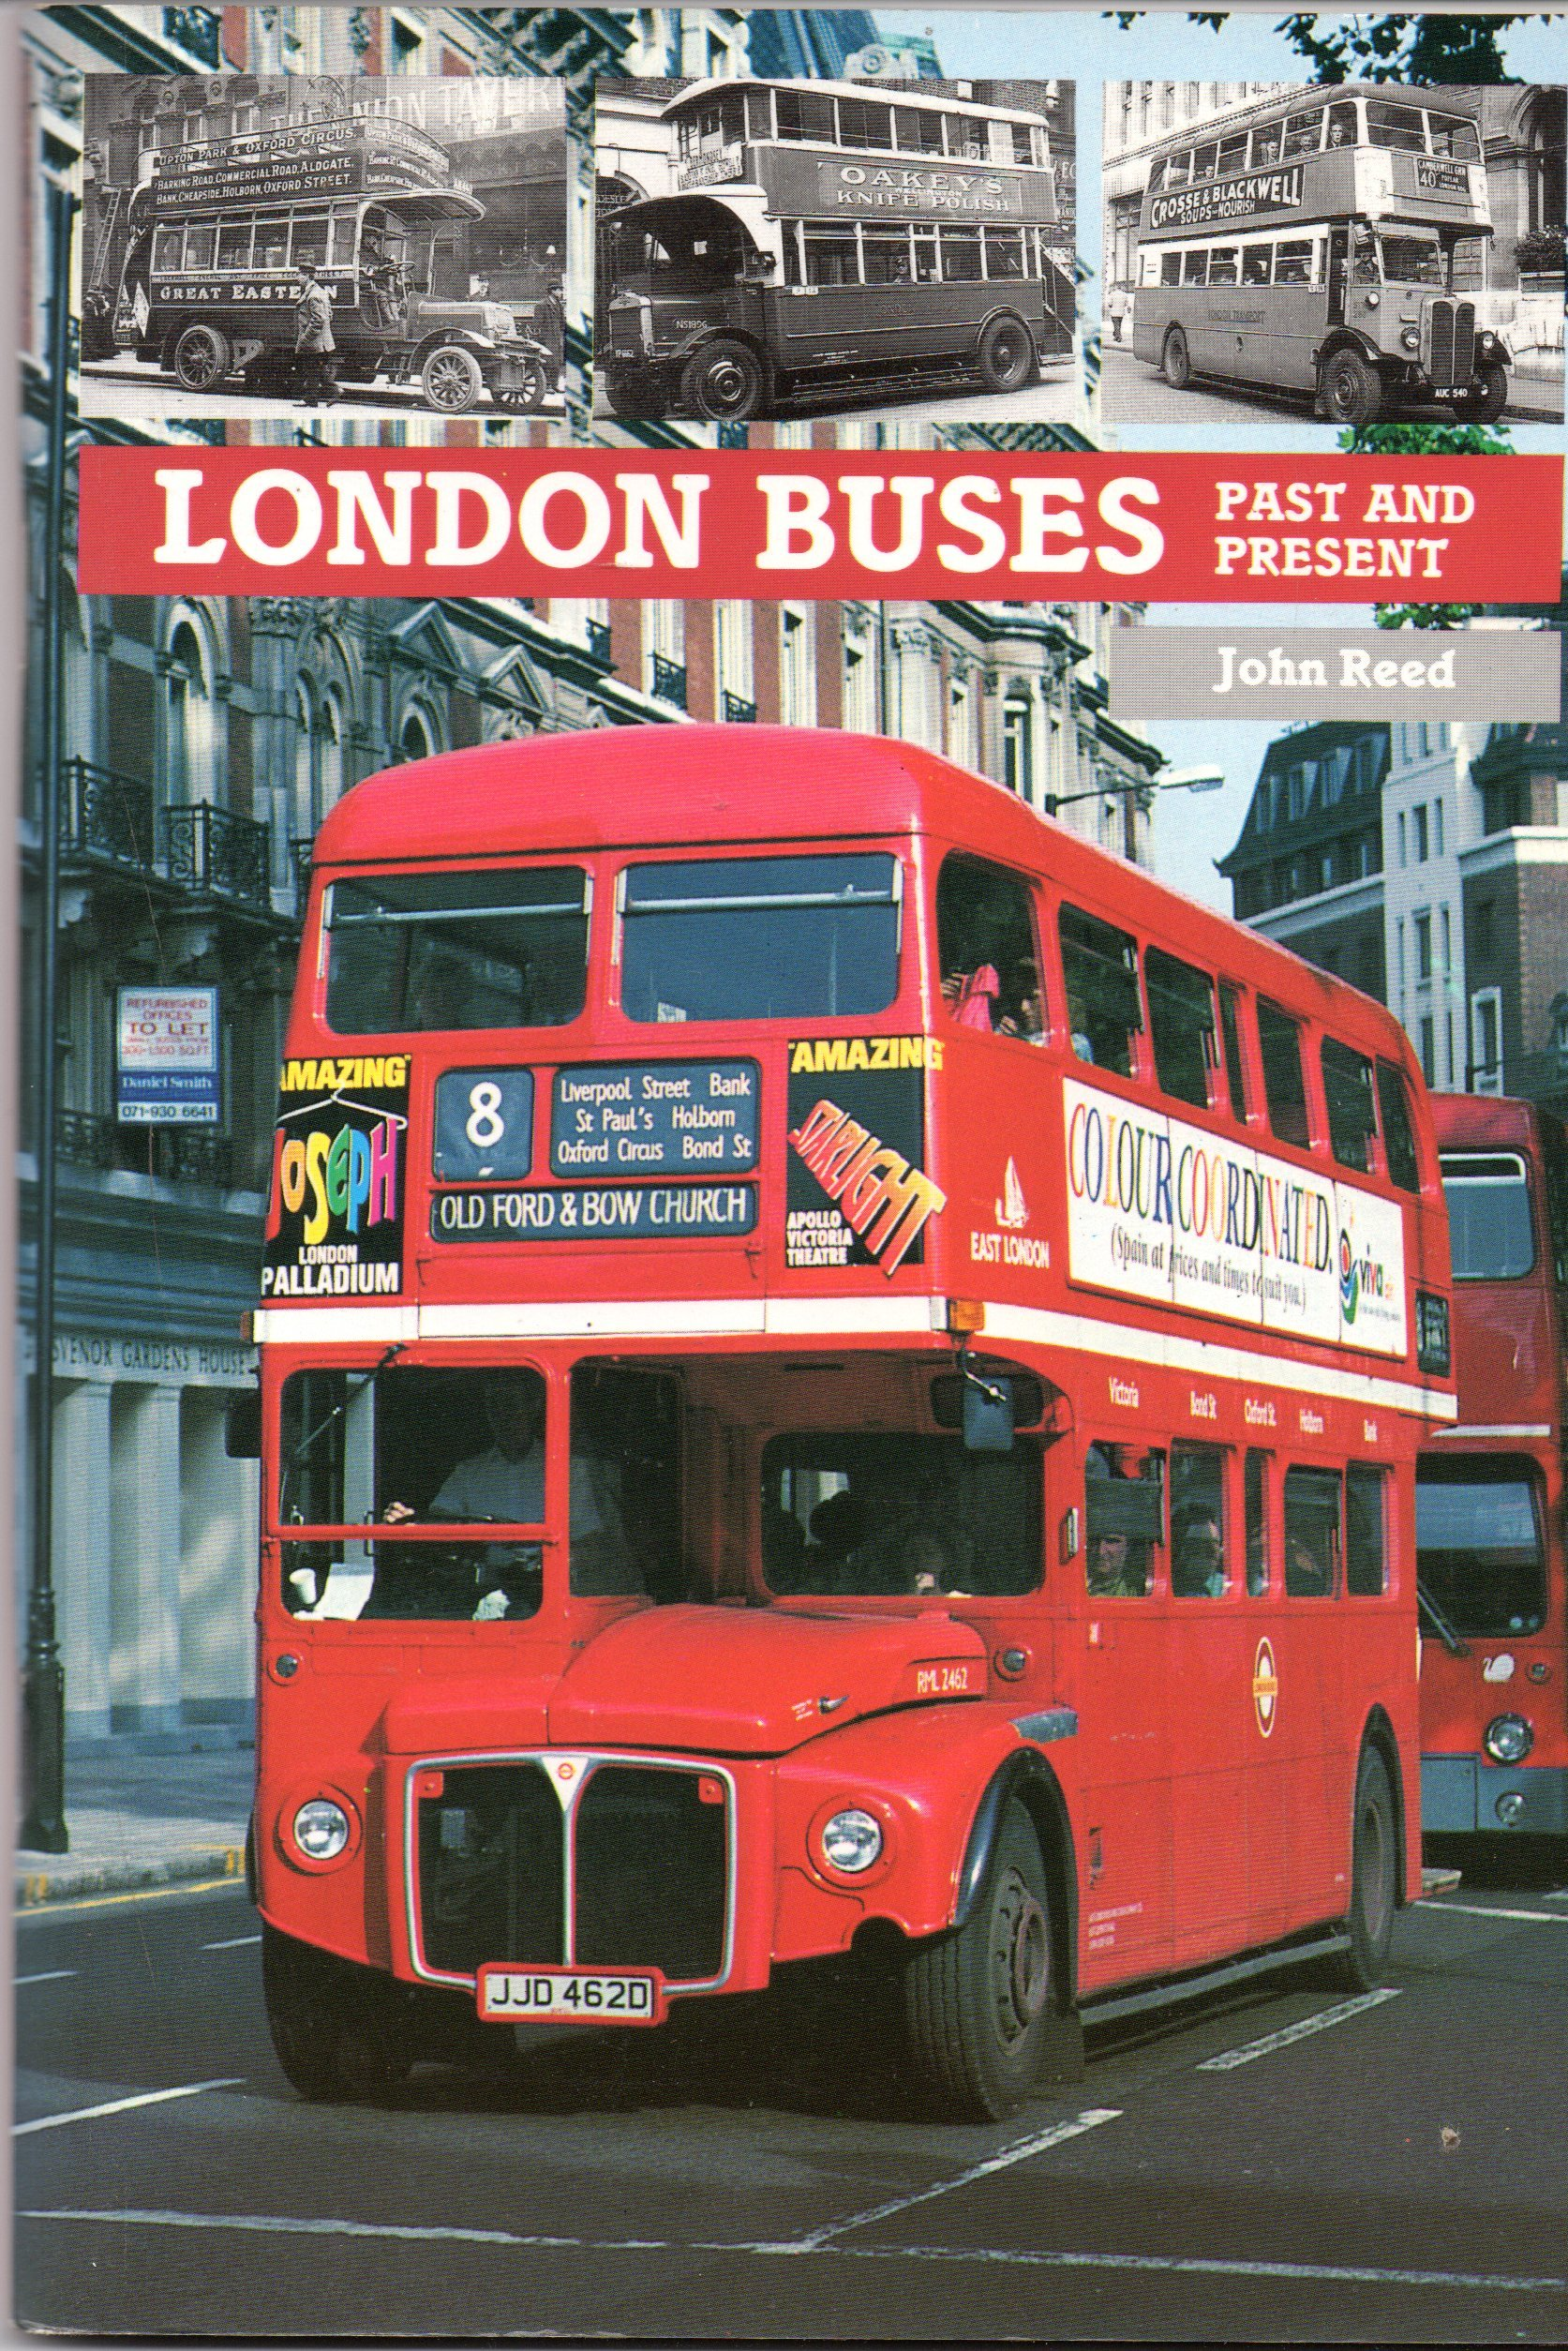 London Buses Past and Present